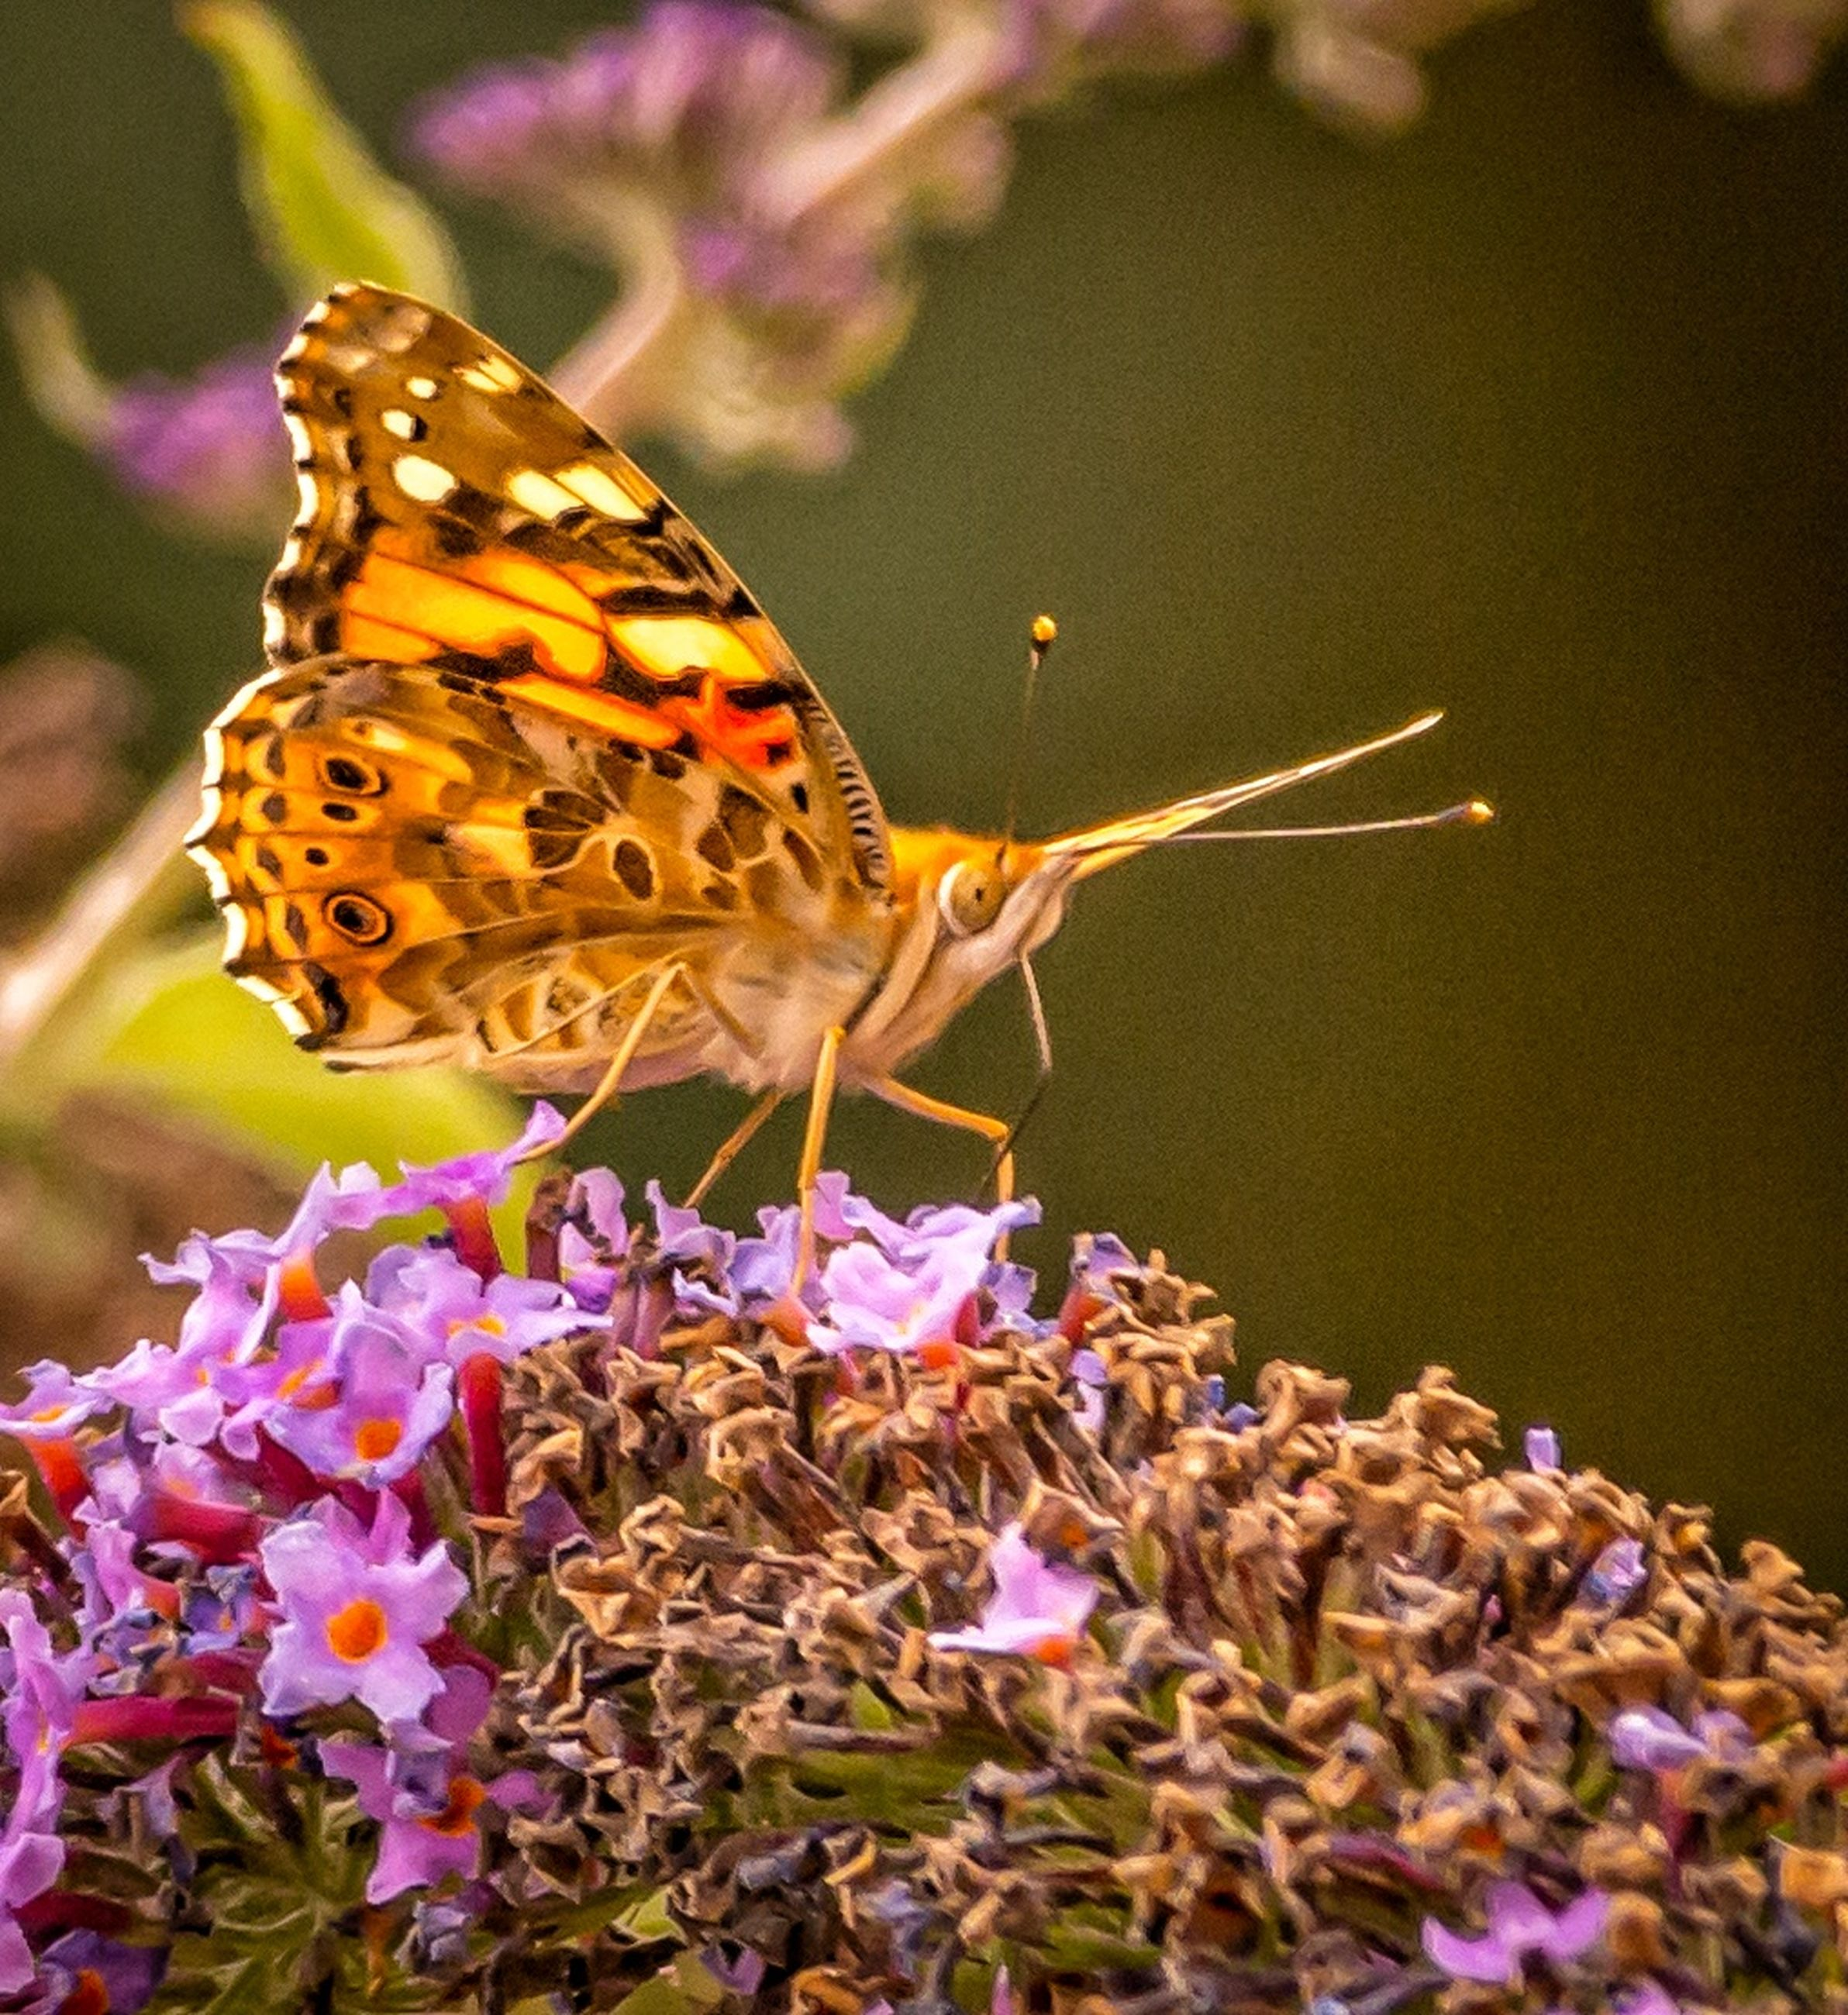 flower, animals in the wild, one animal, animal themes, animal, animal wildlife, invertebrate, insect, beauty in nature, flowering plant, animal wing, butterfly - insect, plant, petal, close-up, fragility, freshness, nature, vulnerability, pollination, flower head, no people, outdoors, purple, butterfly